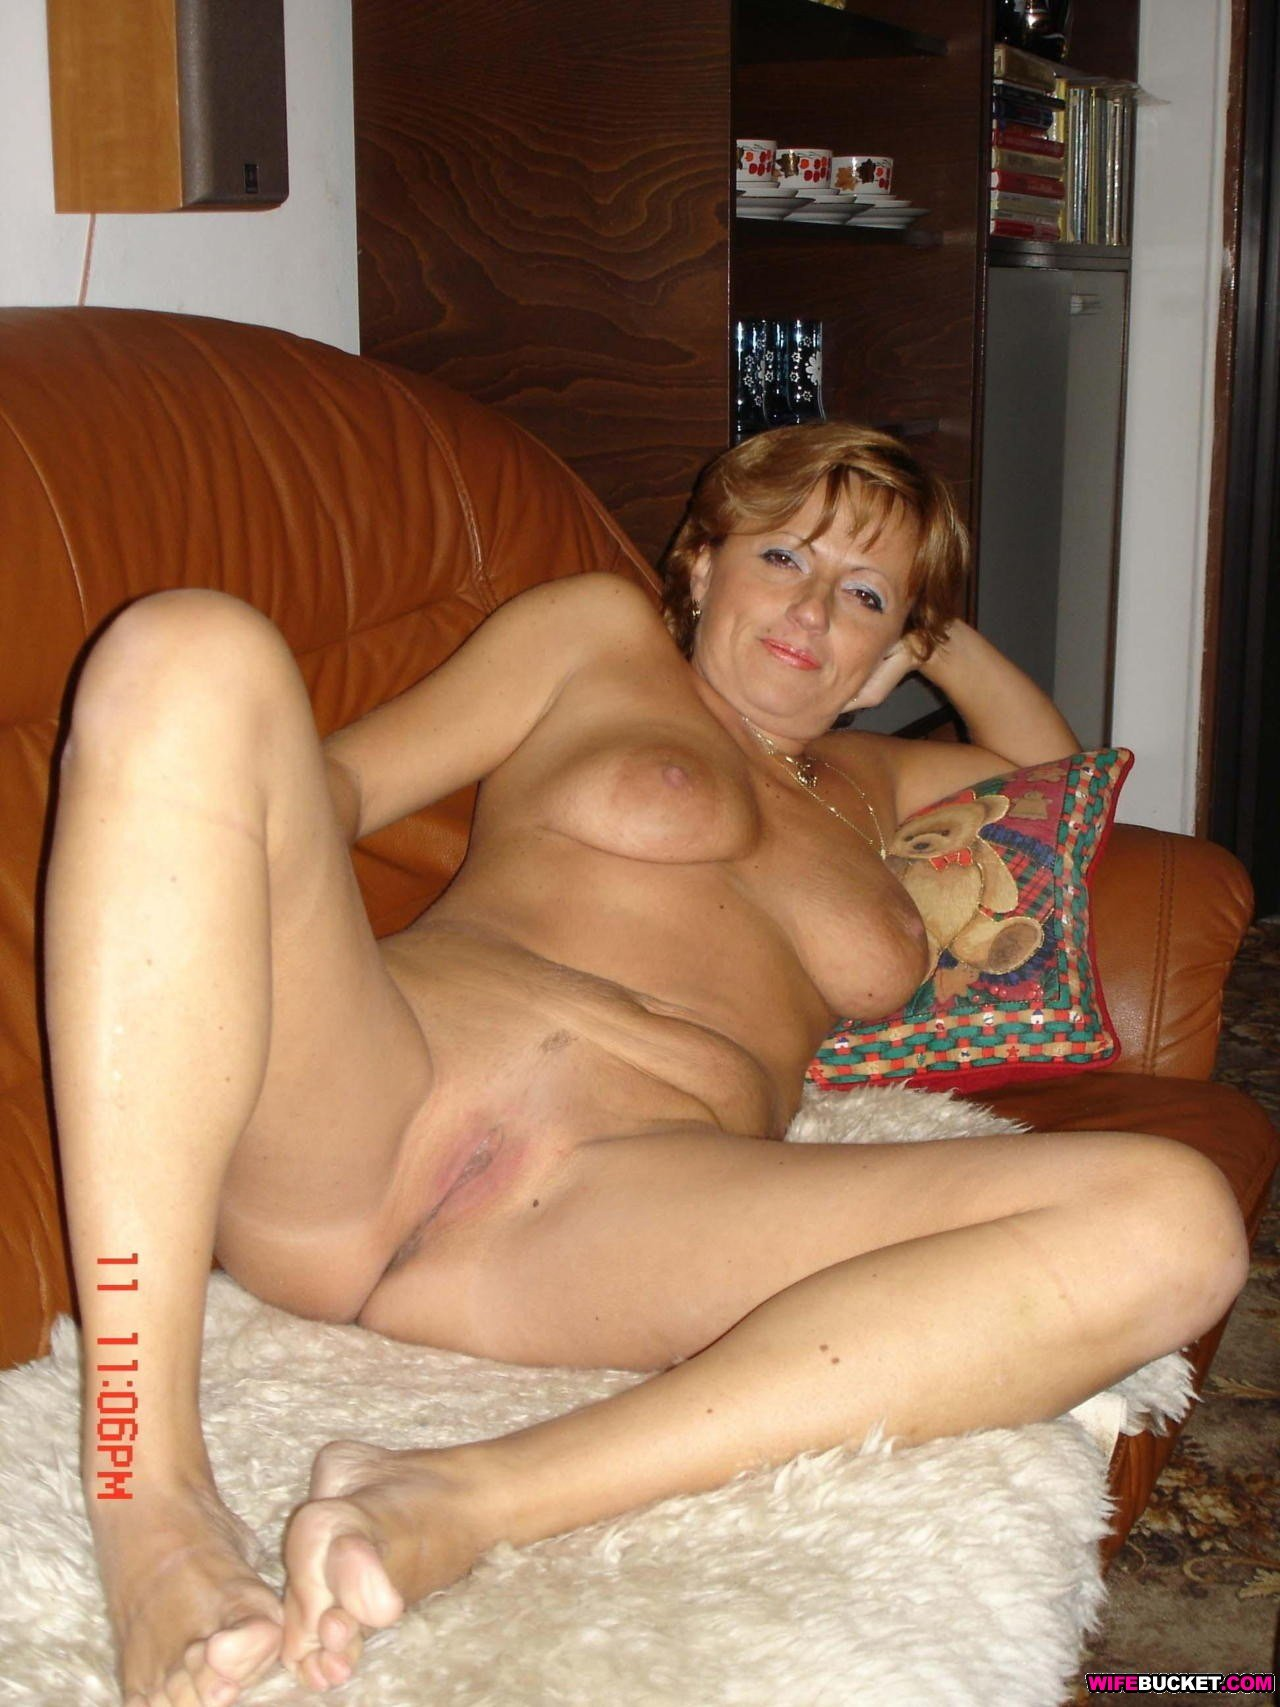 There's only one way to put this - 220,000 photos and 4,900 videos of ...: wifebucket.com/fhg/photo/p10/p10-457-wifebucket-videos/index.php